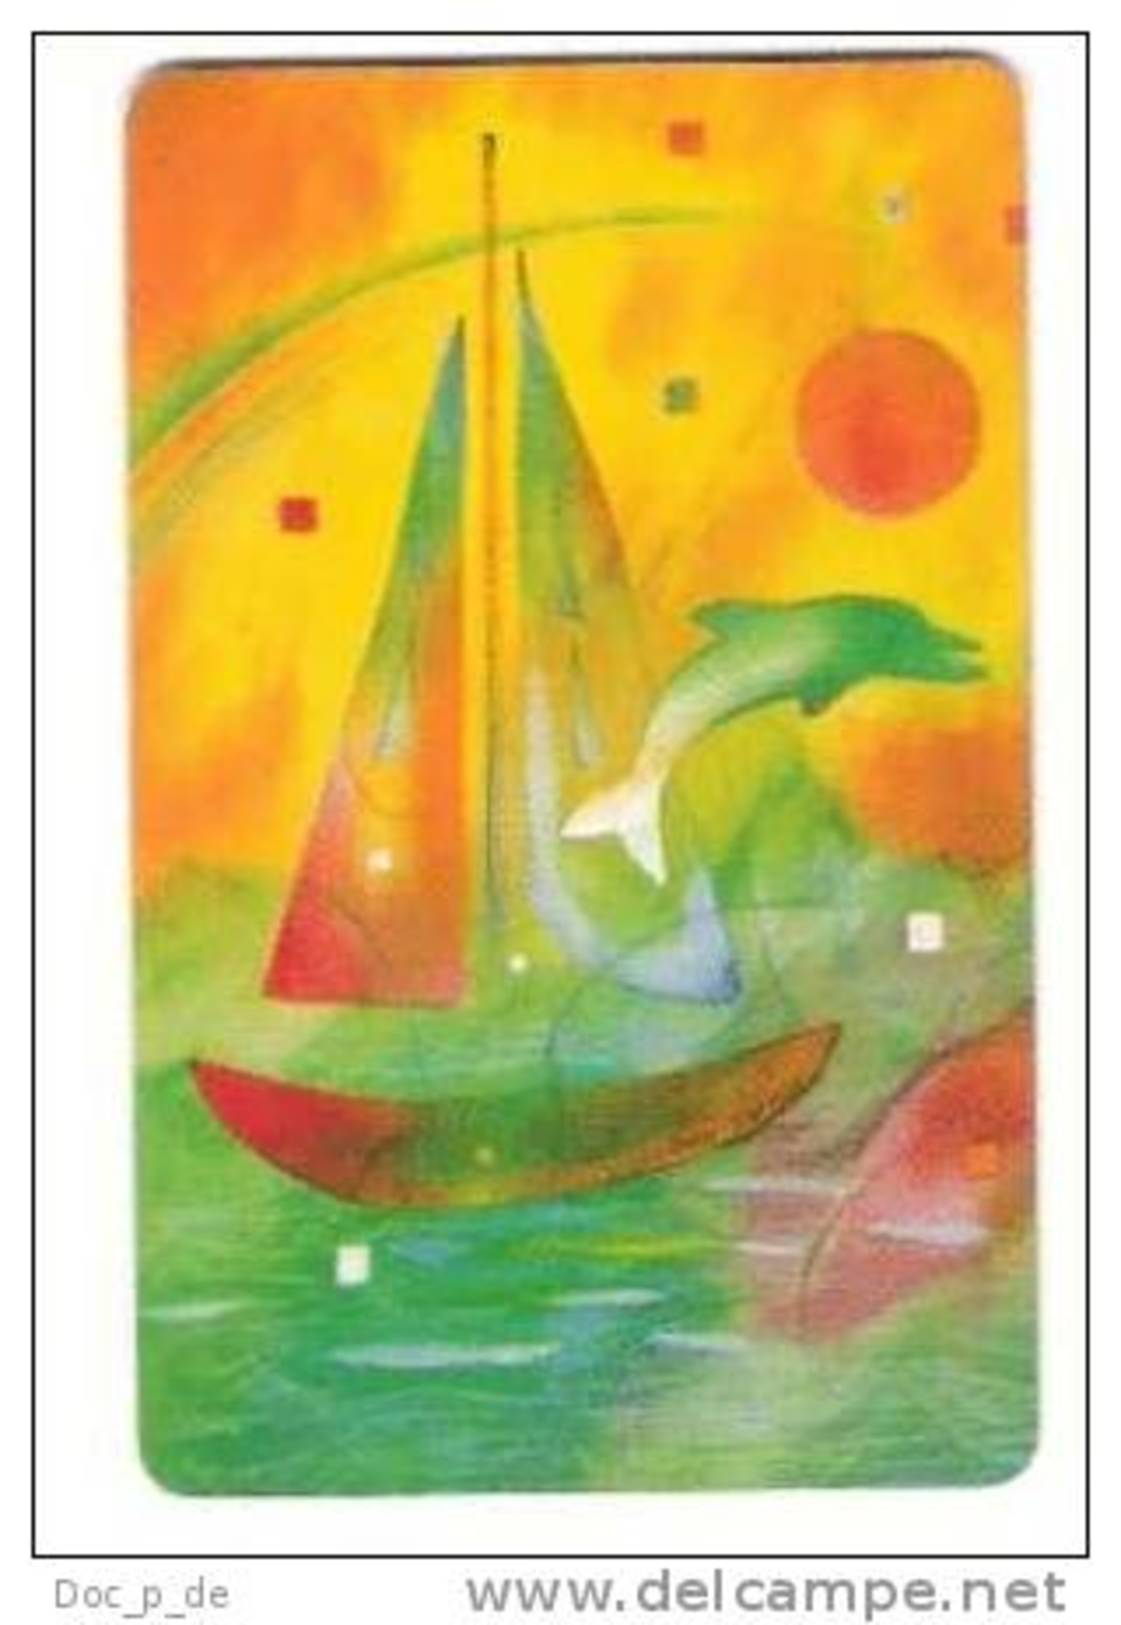 Deutschland - P 09/97 - Sommer - Summer - Painting - Ship - Joan Sofron - Germany